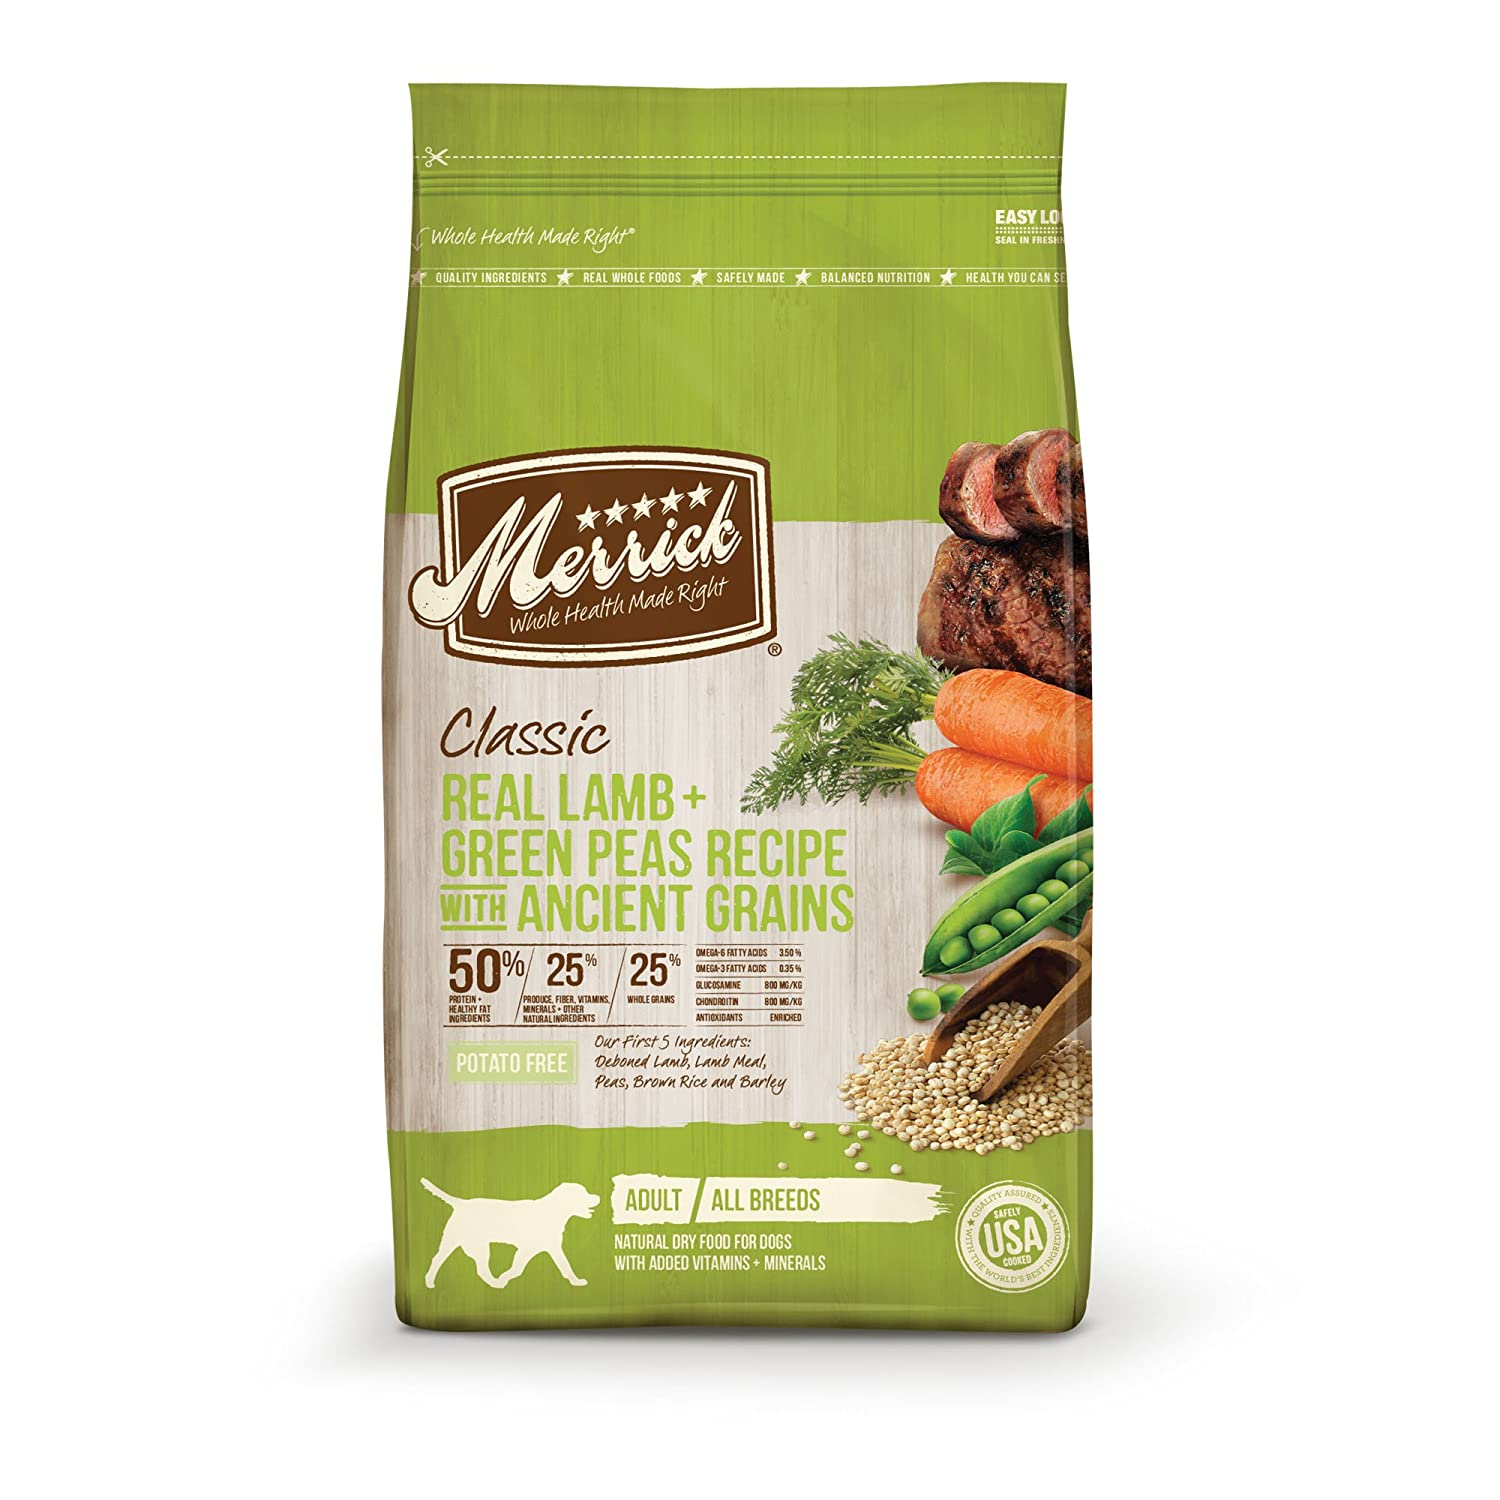 Merrick Classic Real Lamb Green Peas with Ancient Grains Dry Dog Food